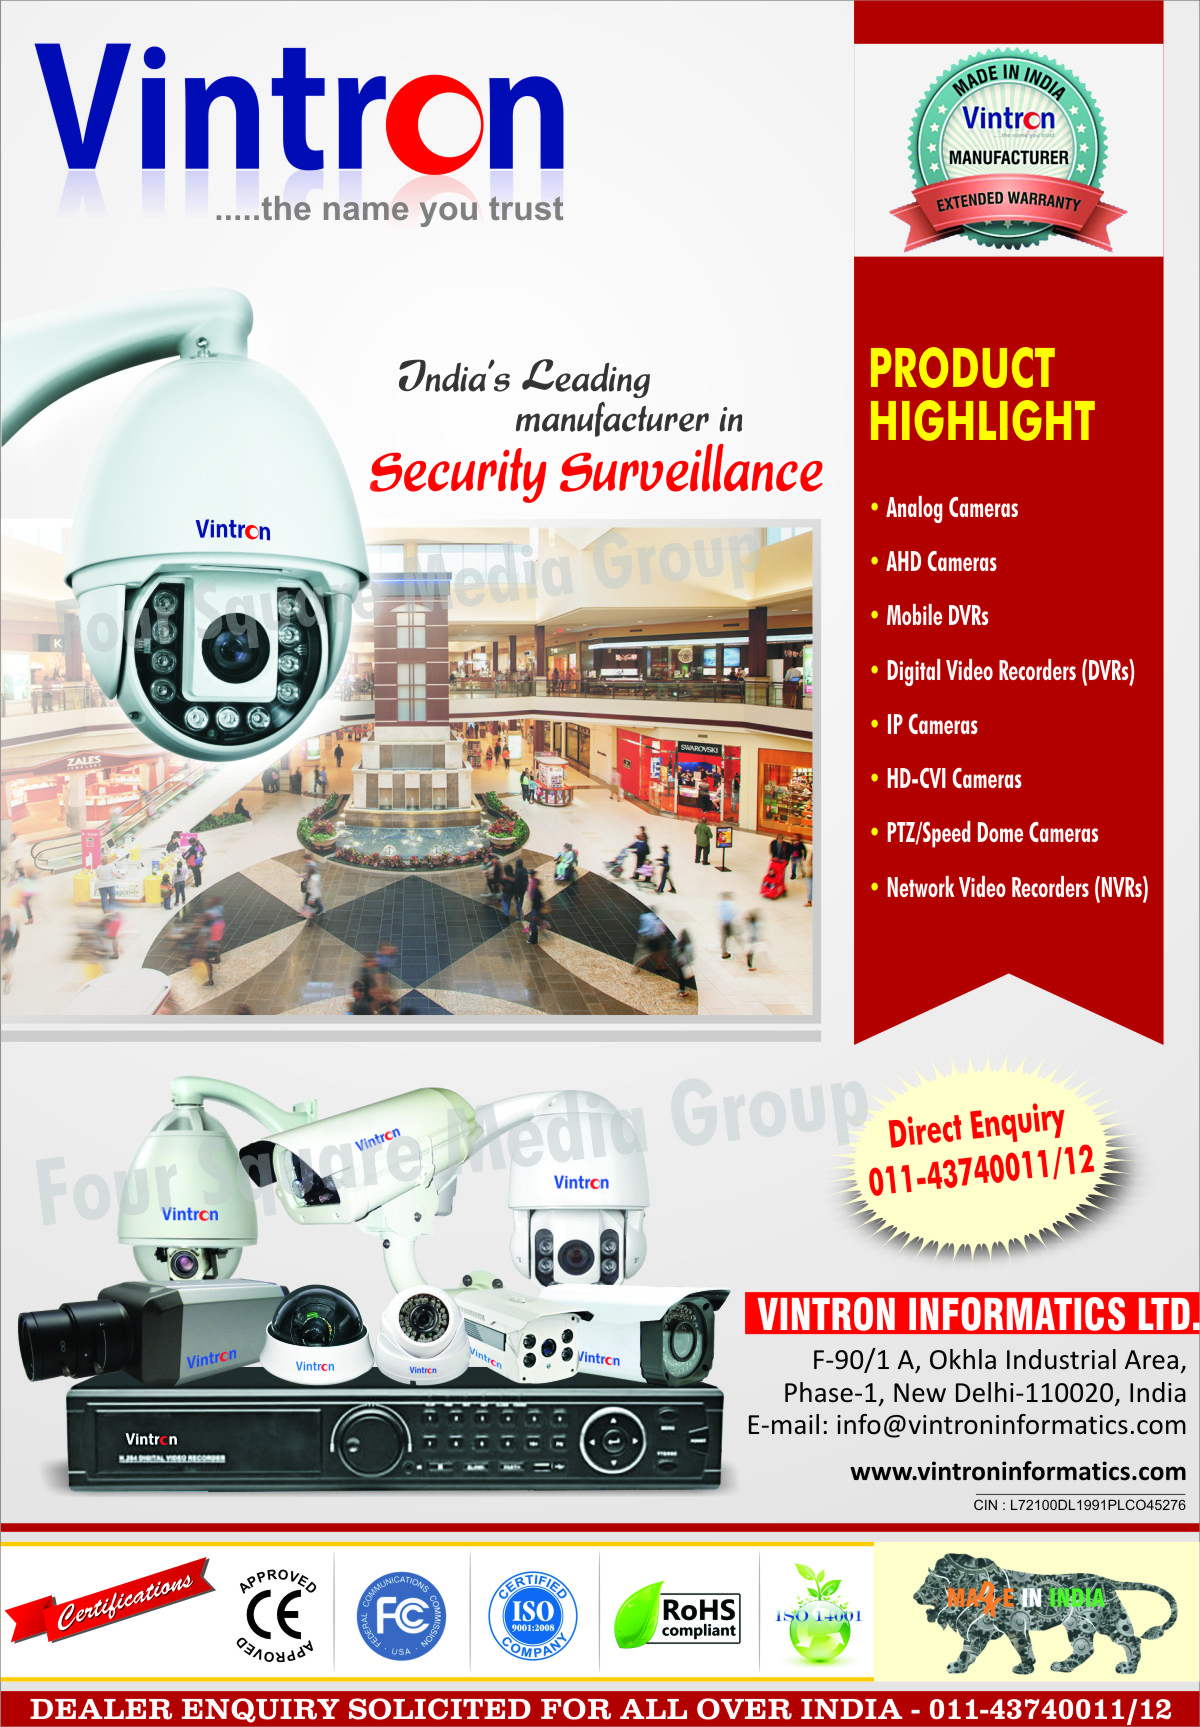 Analog Cameras, AHD Cameras, Mobile DVRs, Mobile Digital Video Recorders, IP Cameras, HD CVI Cameras, PTZ Dome Cameras, Speed Dome Cameras, Network Video Recorders, NVR, Security Surveillance